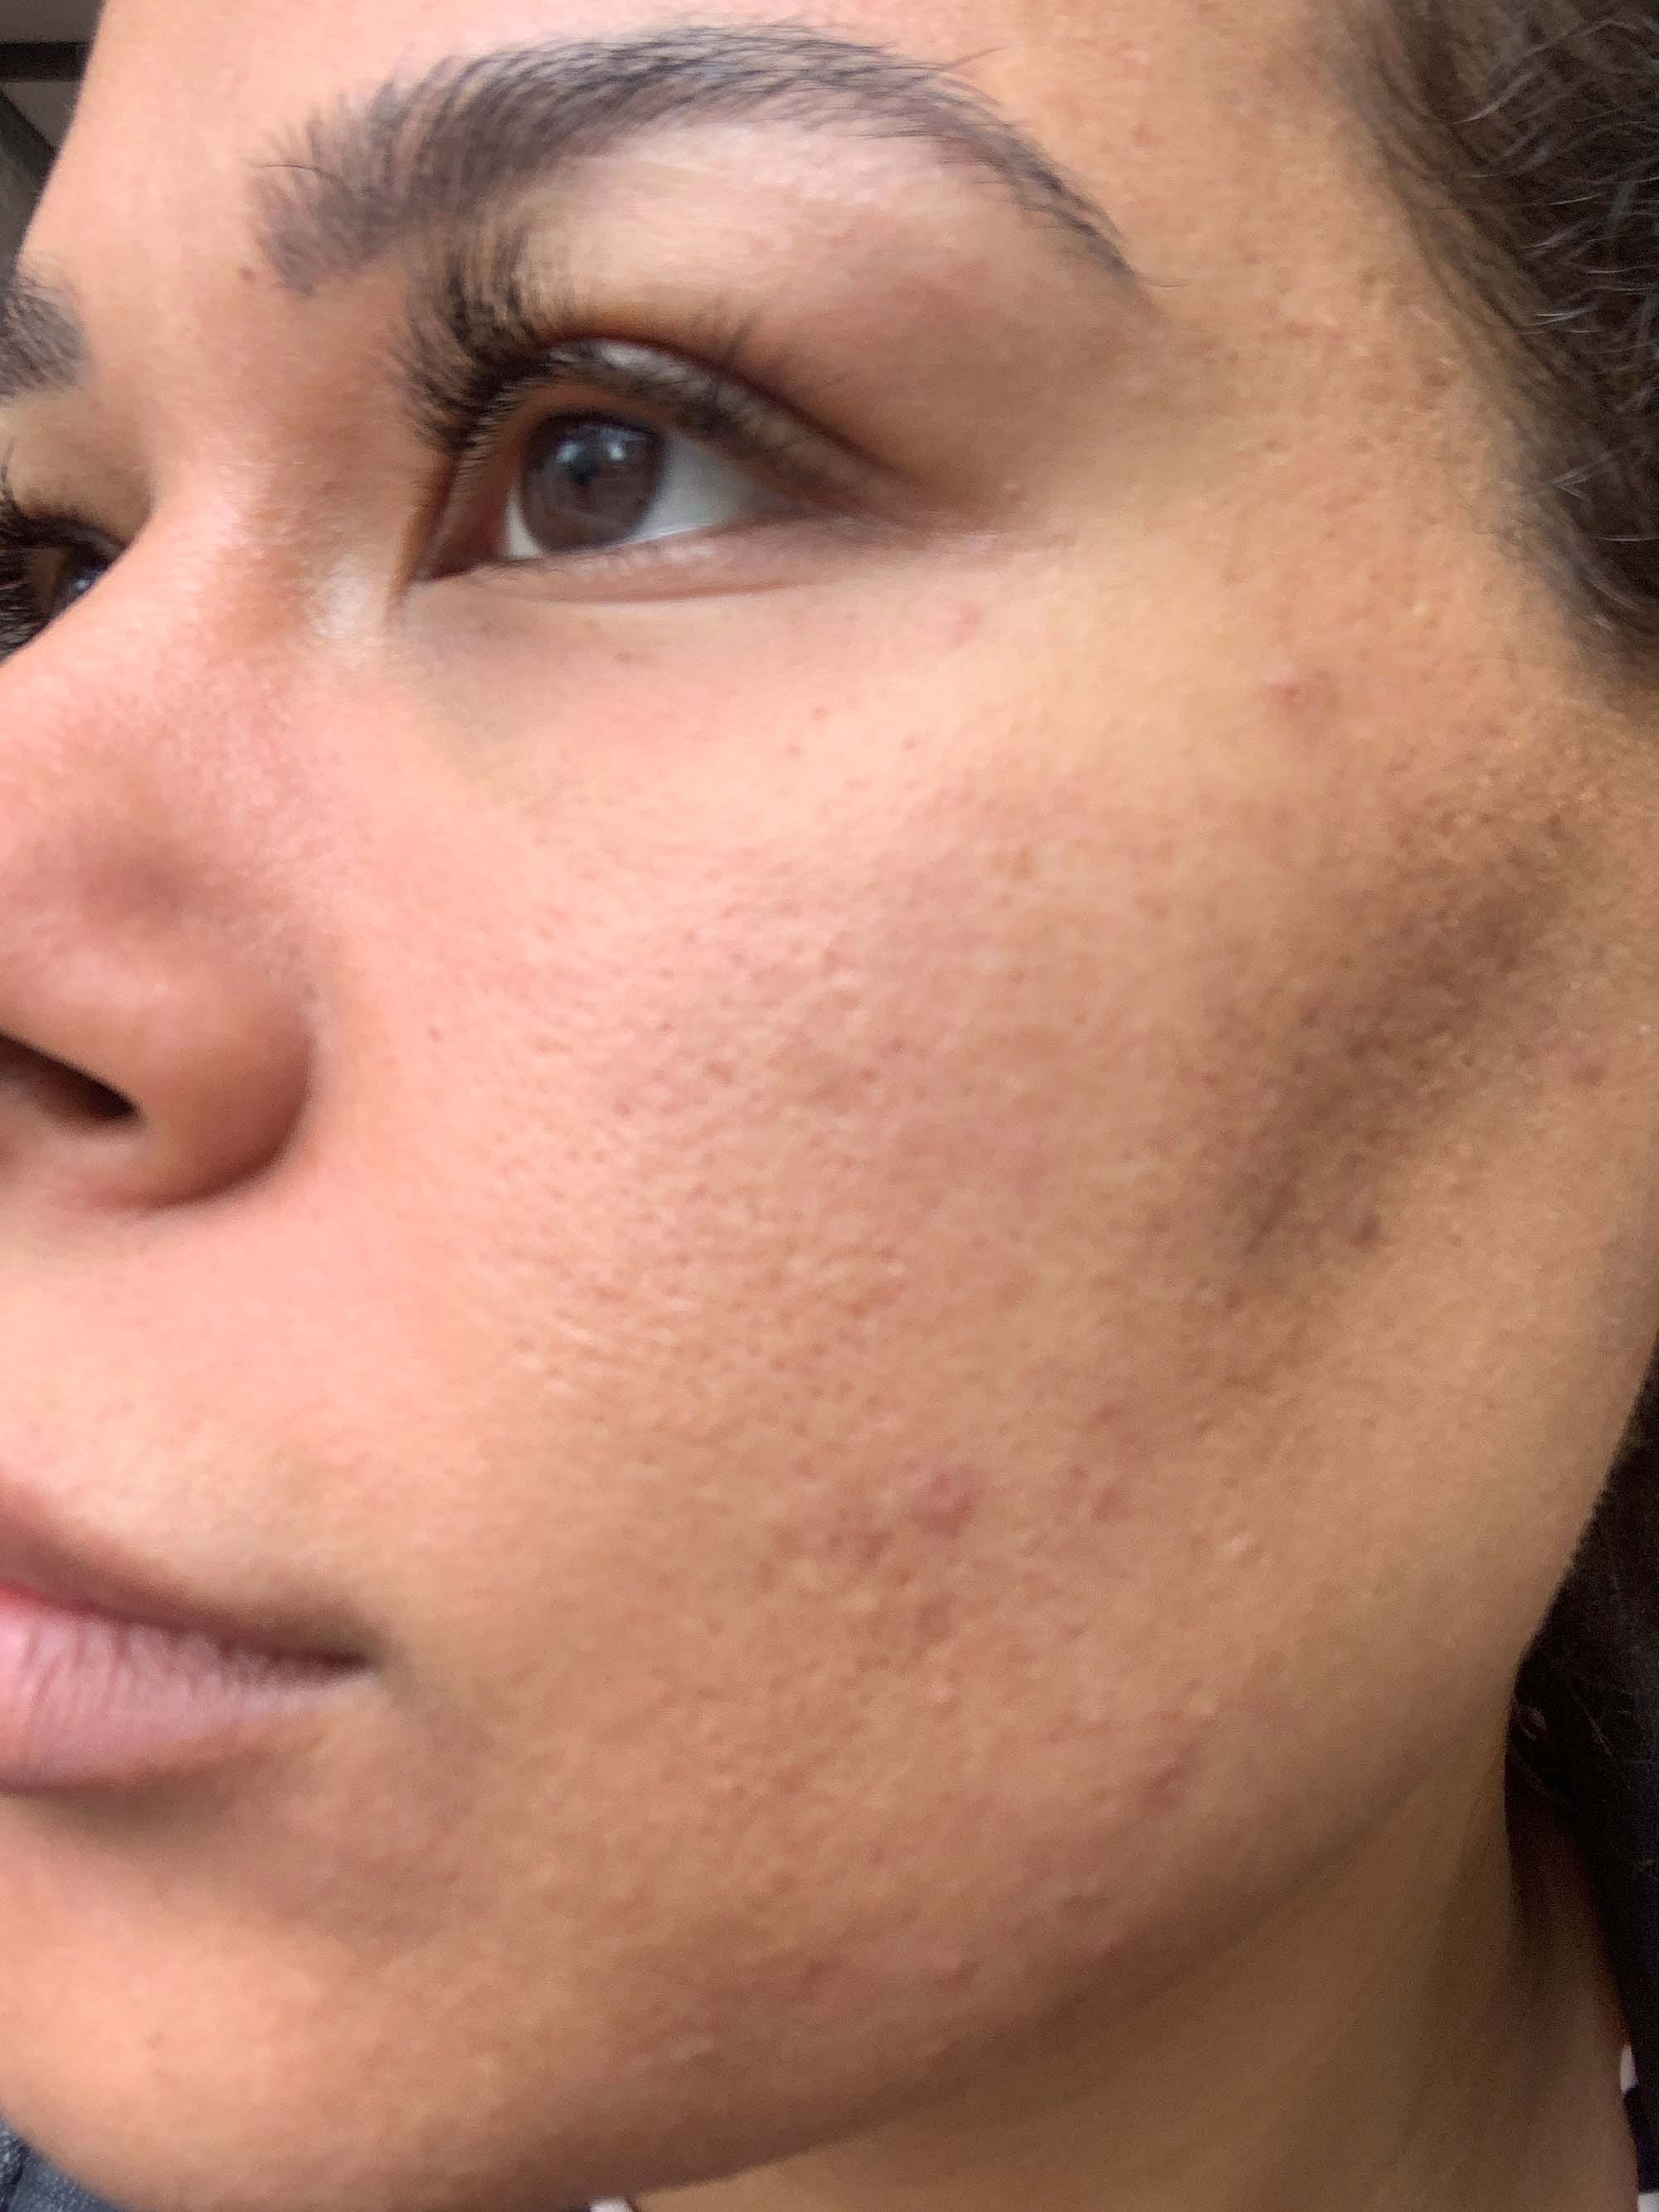 Injectable Filler For Acne Scars – Procedure & Results